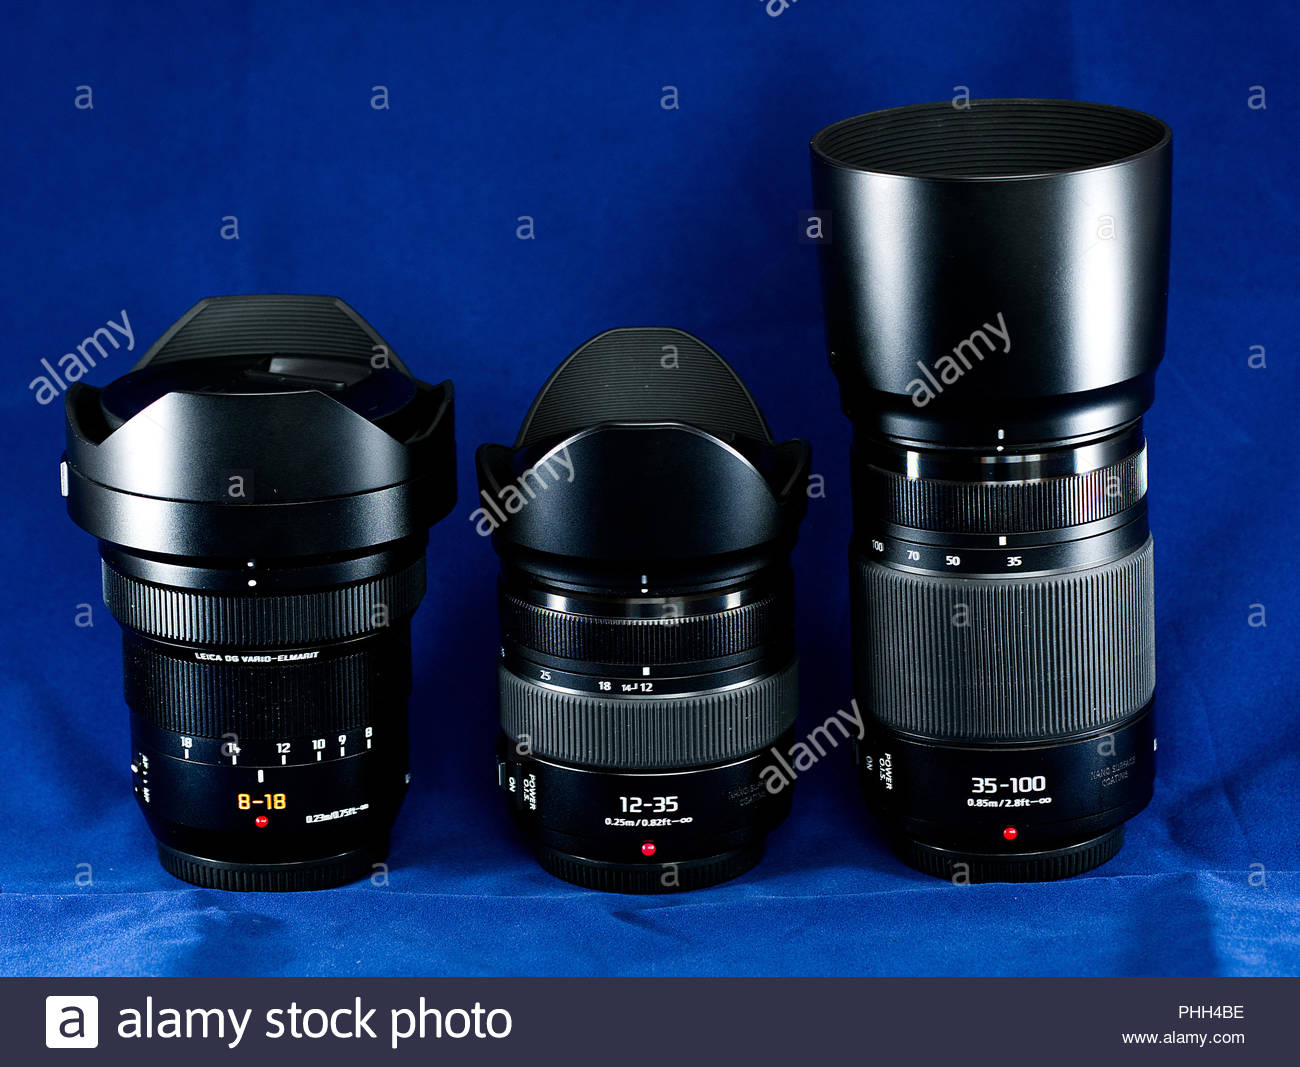 A group of Panasonic lenses for micro four thirds format lumix cameras. - Stock Image